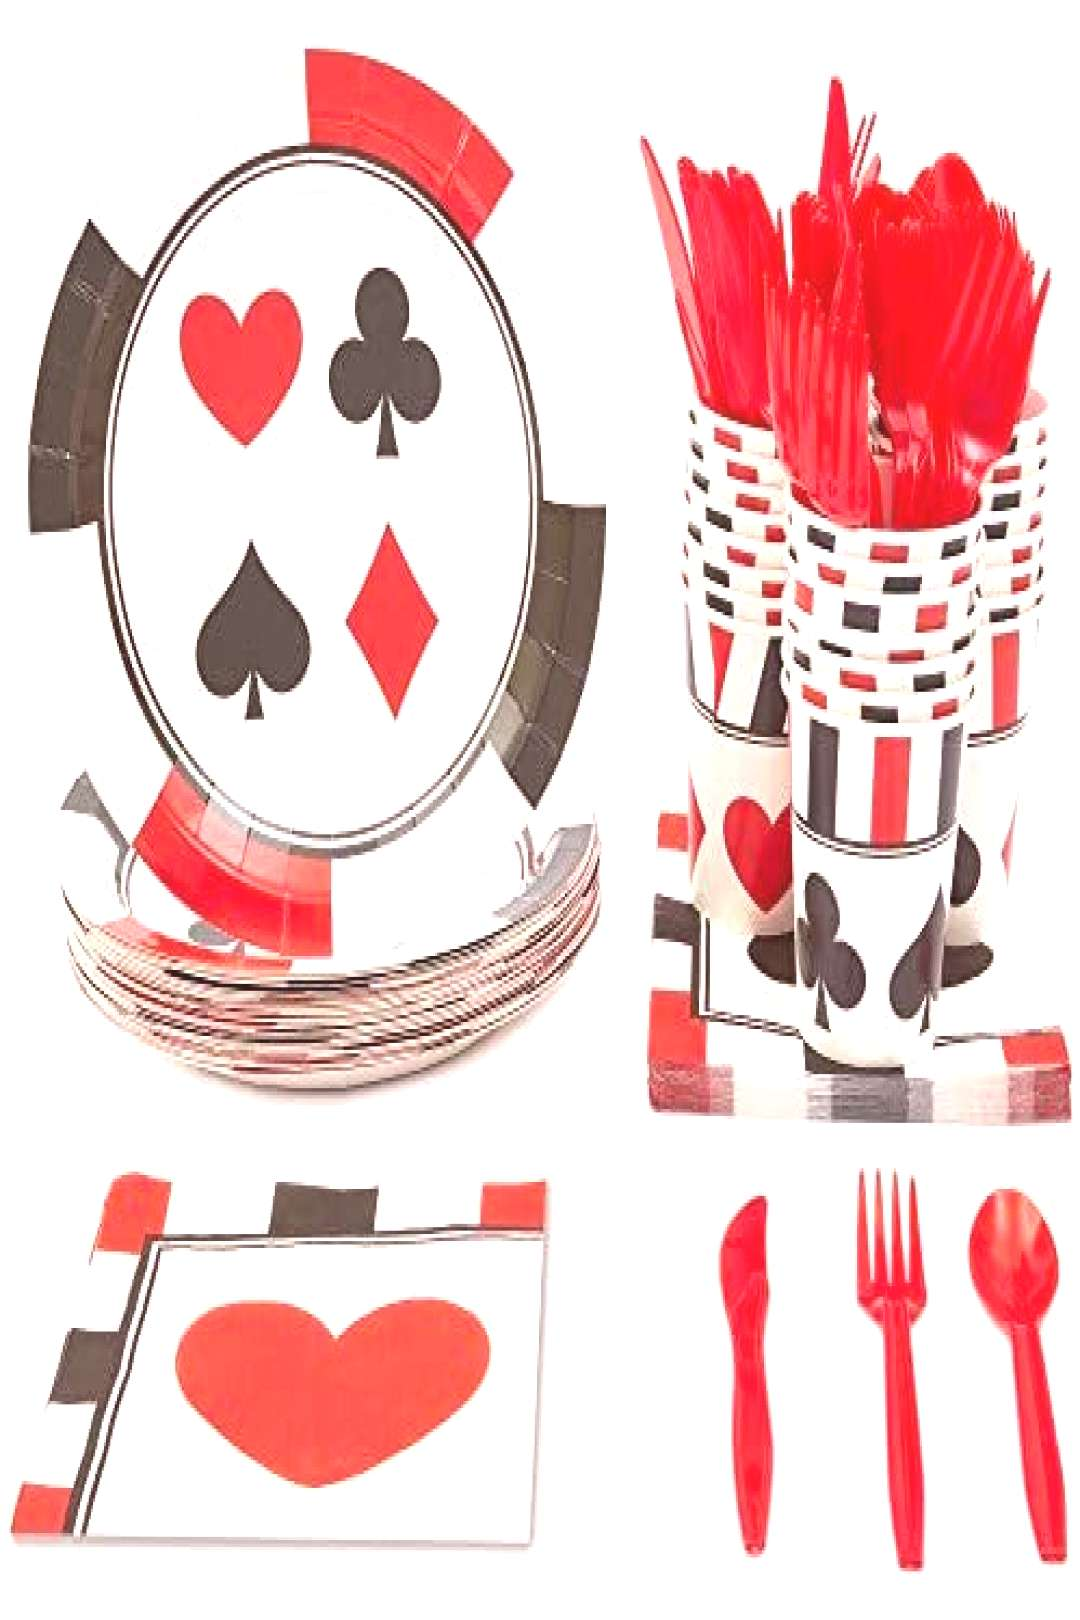 Blue Panda Casino Party Supplies - Serves 24 - Plates, Knives, Spoons, Forks, Cups and Napkins